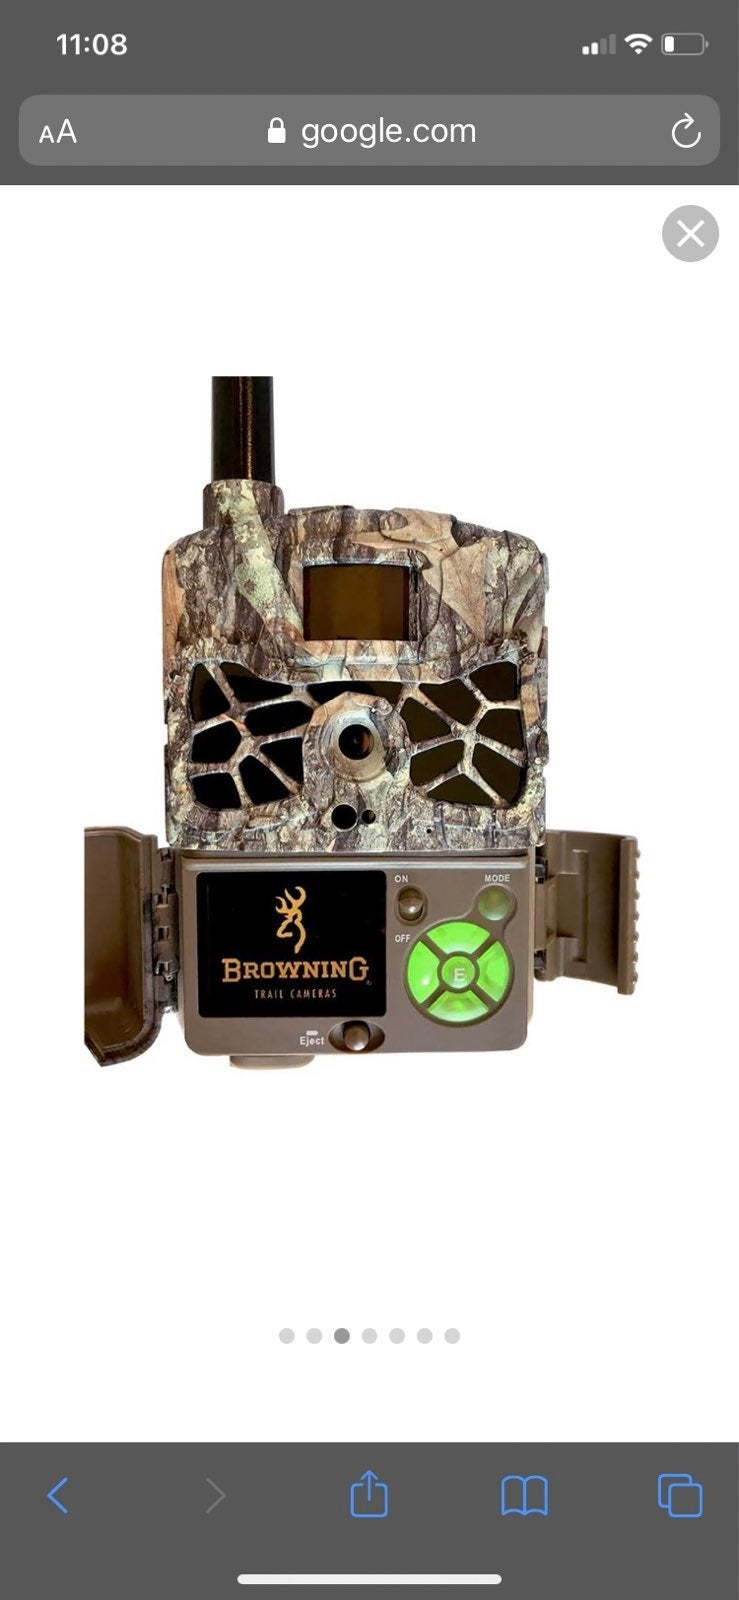 20MP Browning defender Wireless trailcam